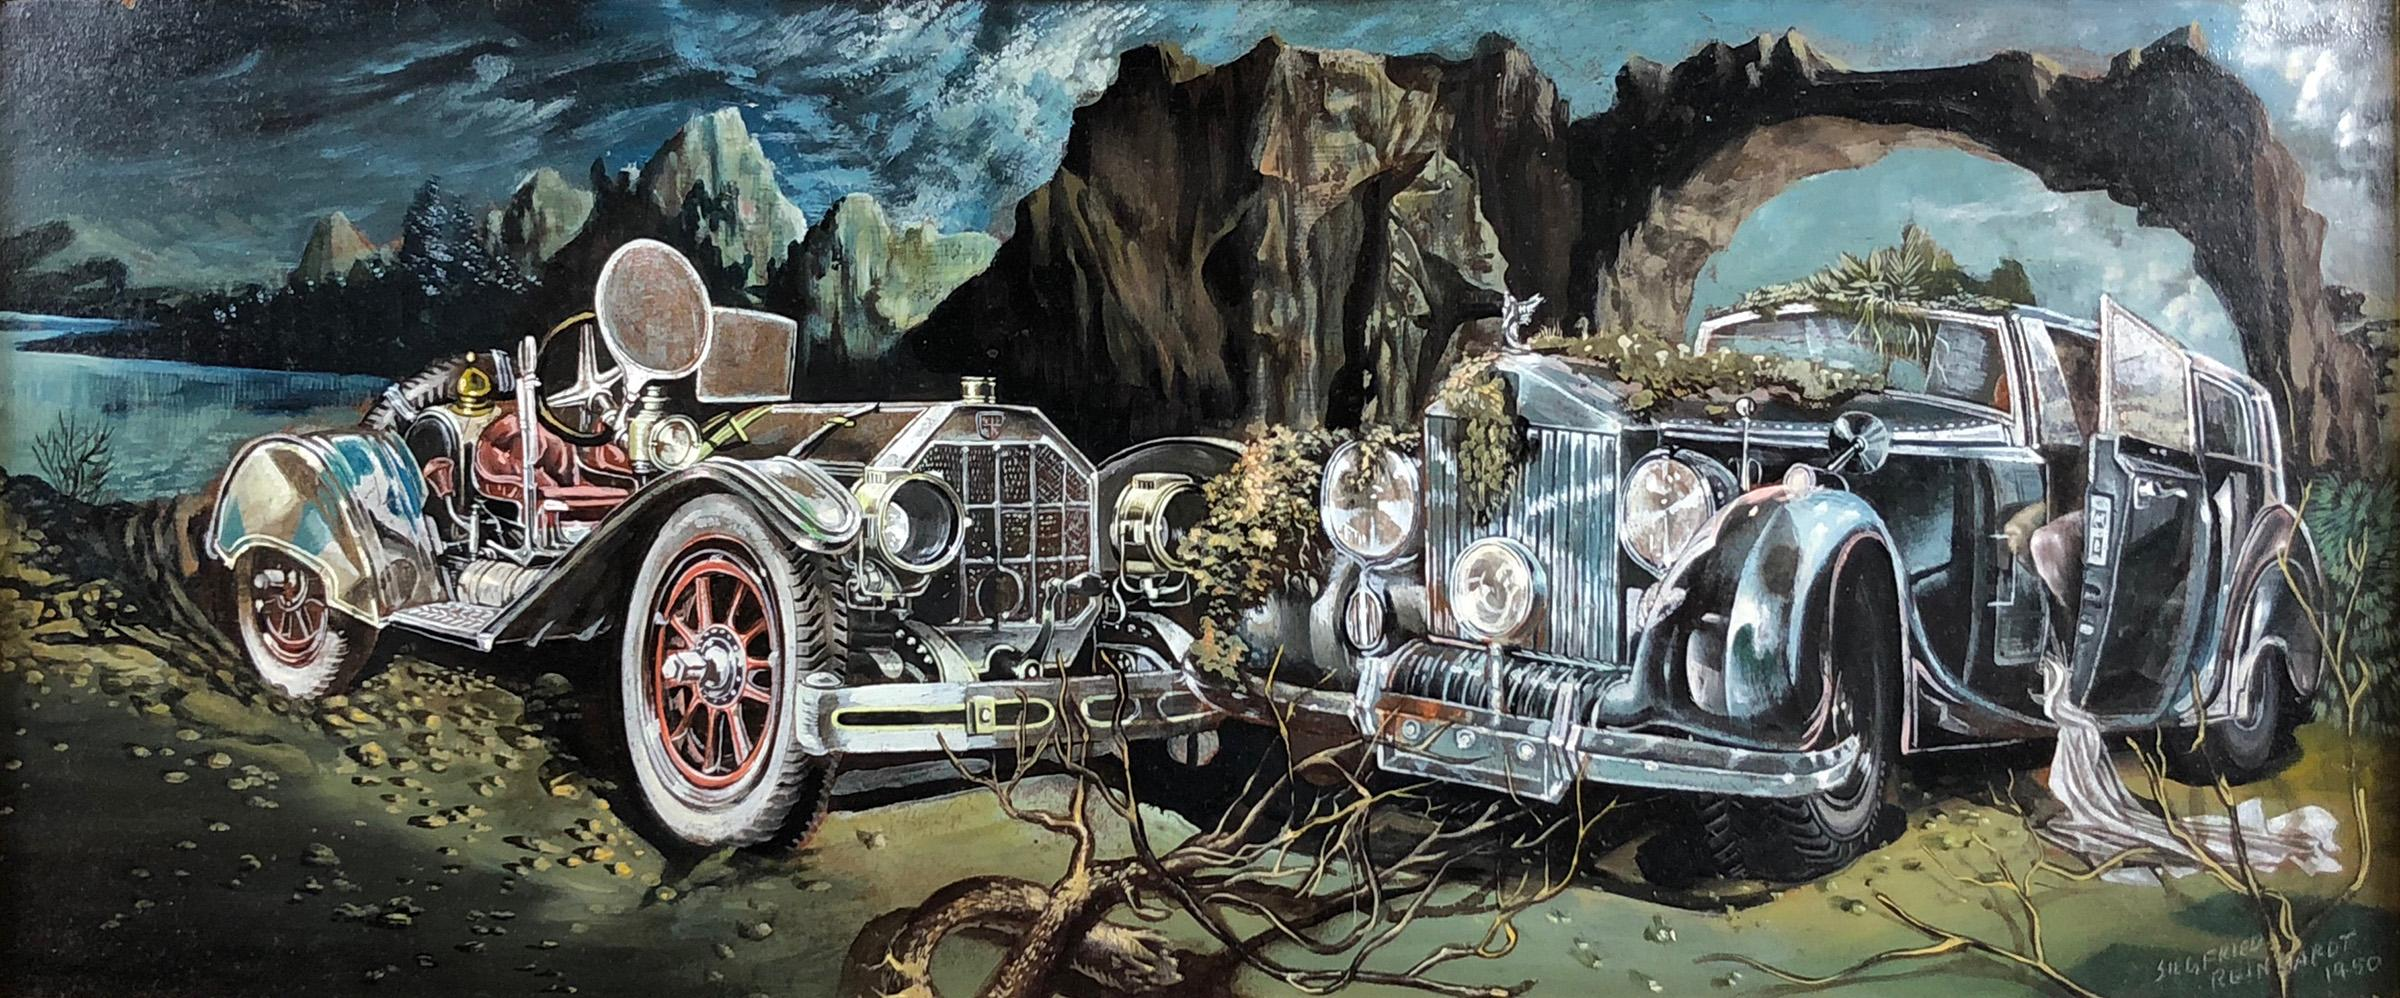 Surreal Landscape with an American Underslung and Rolls Royce